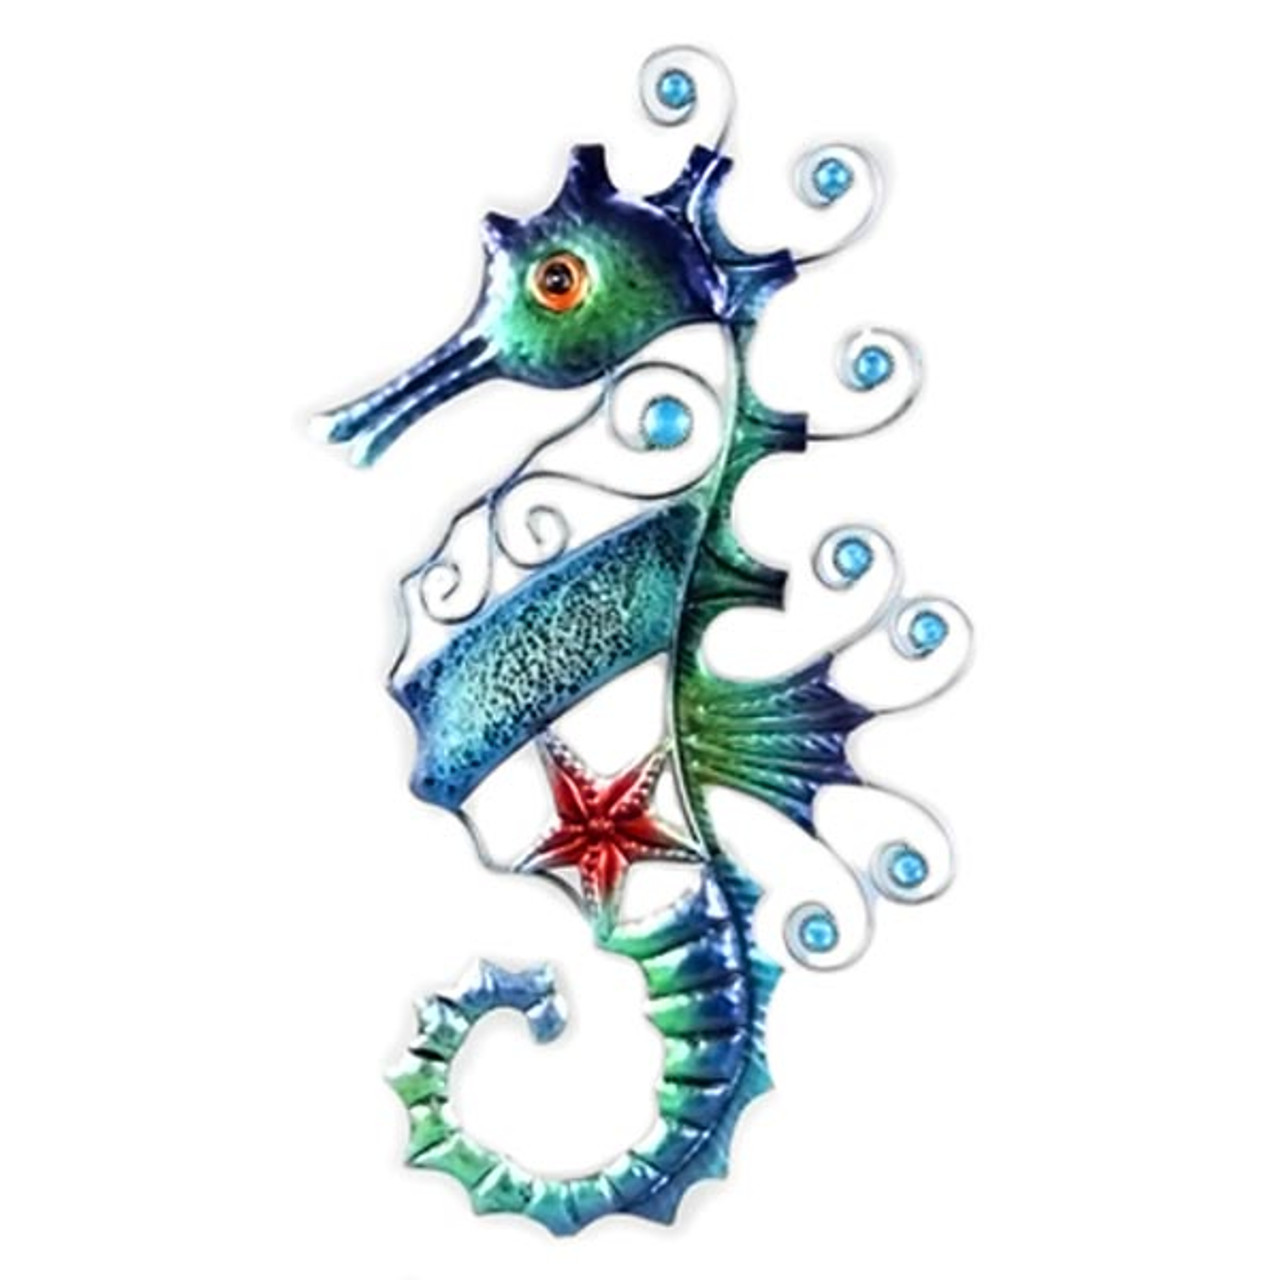 Seahorse Decorative Metal Wall Decor 15153 Colorfulcritters